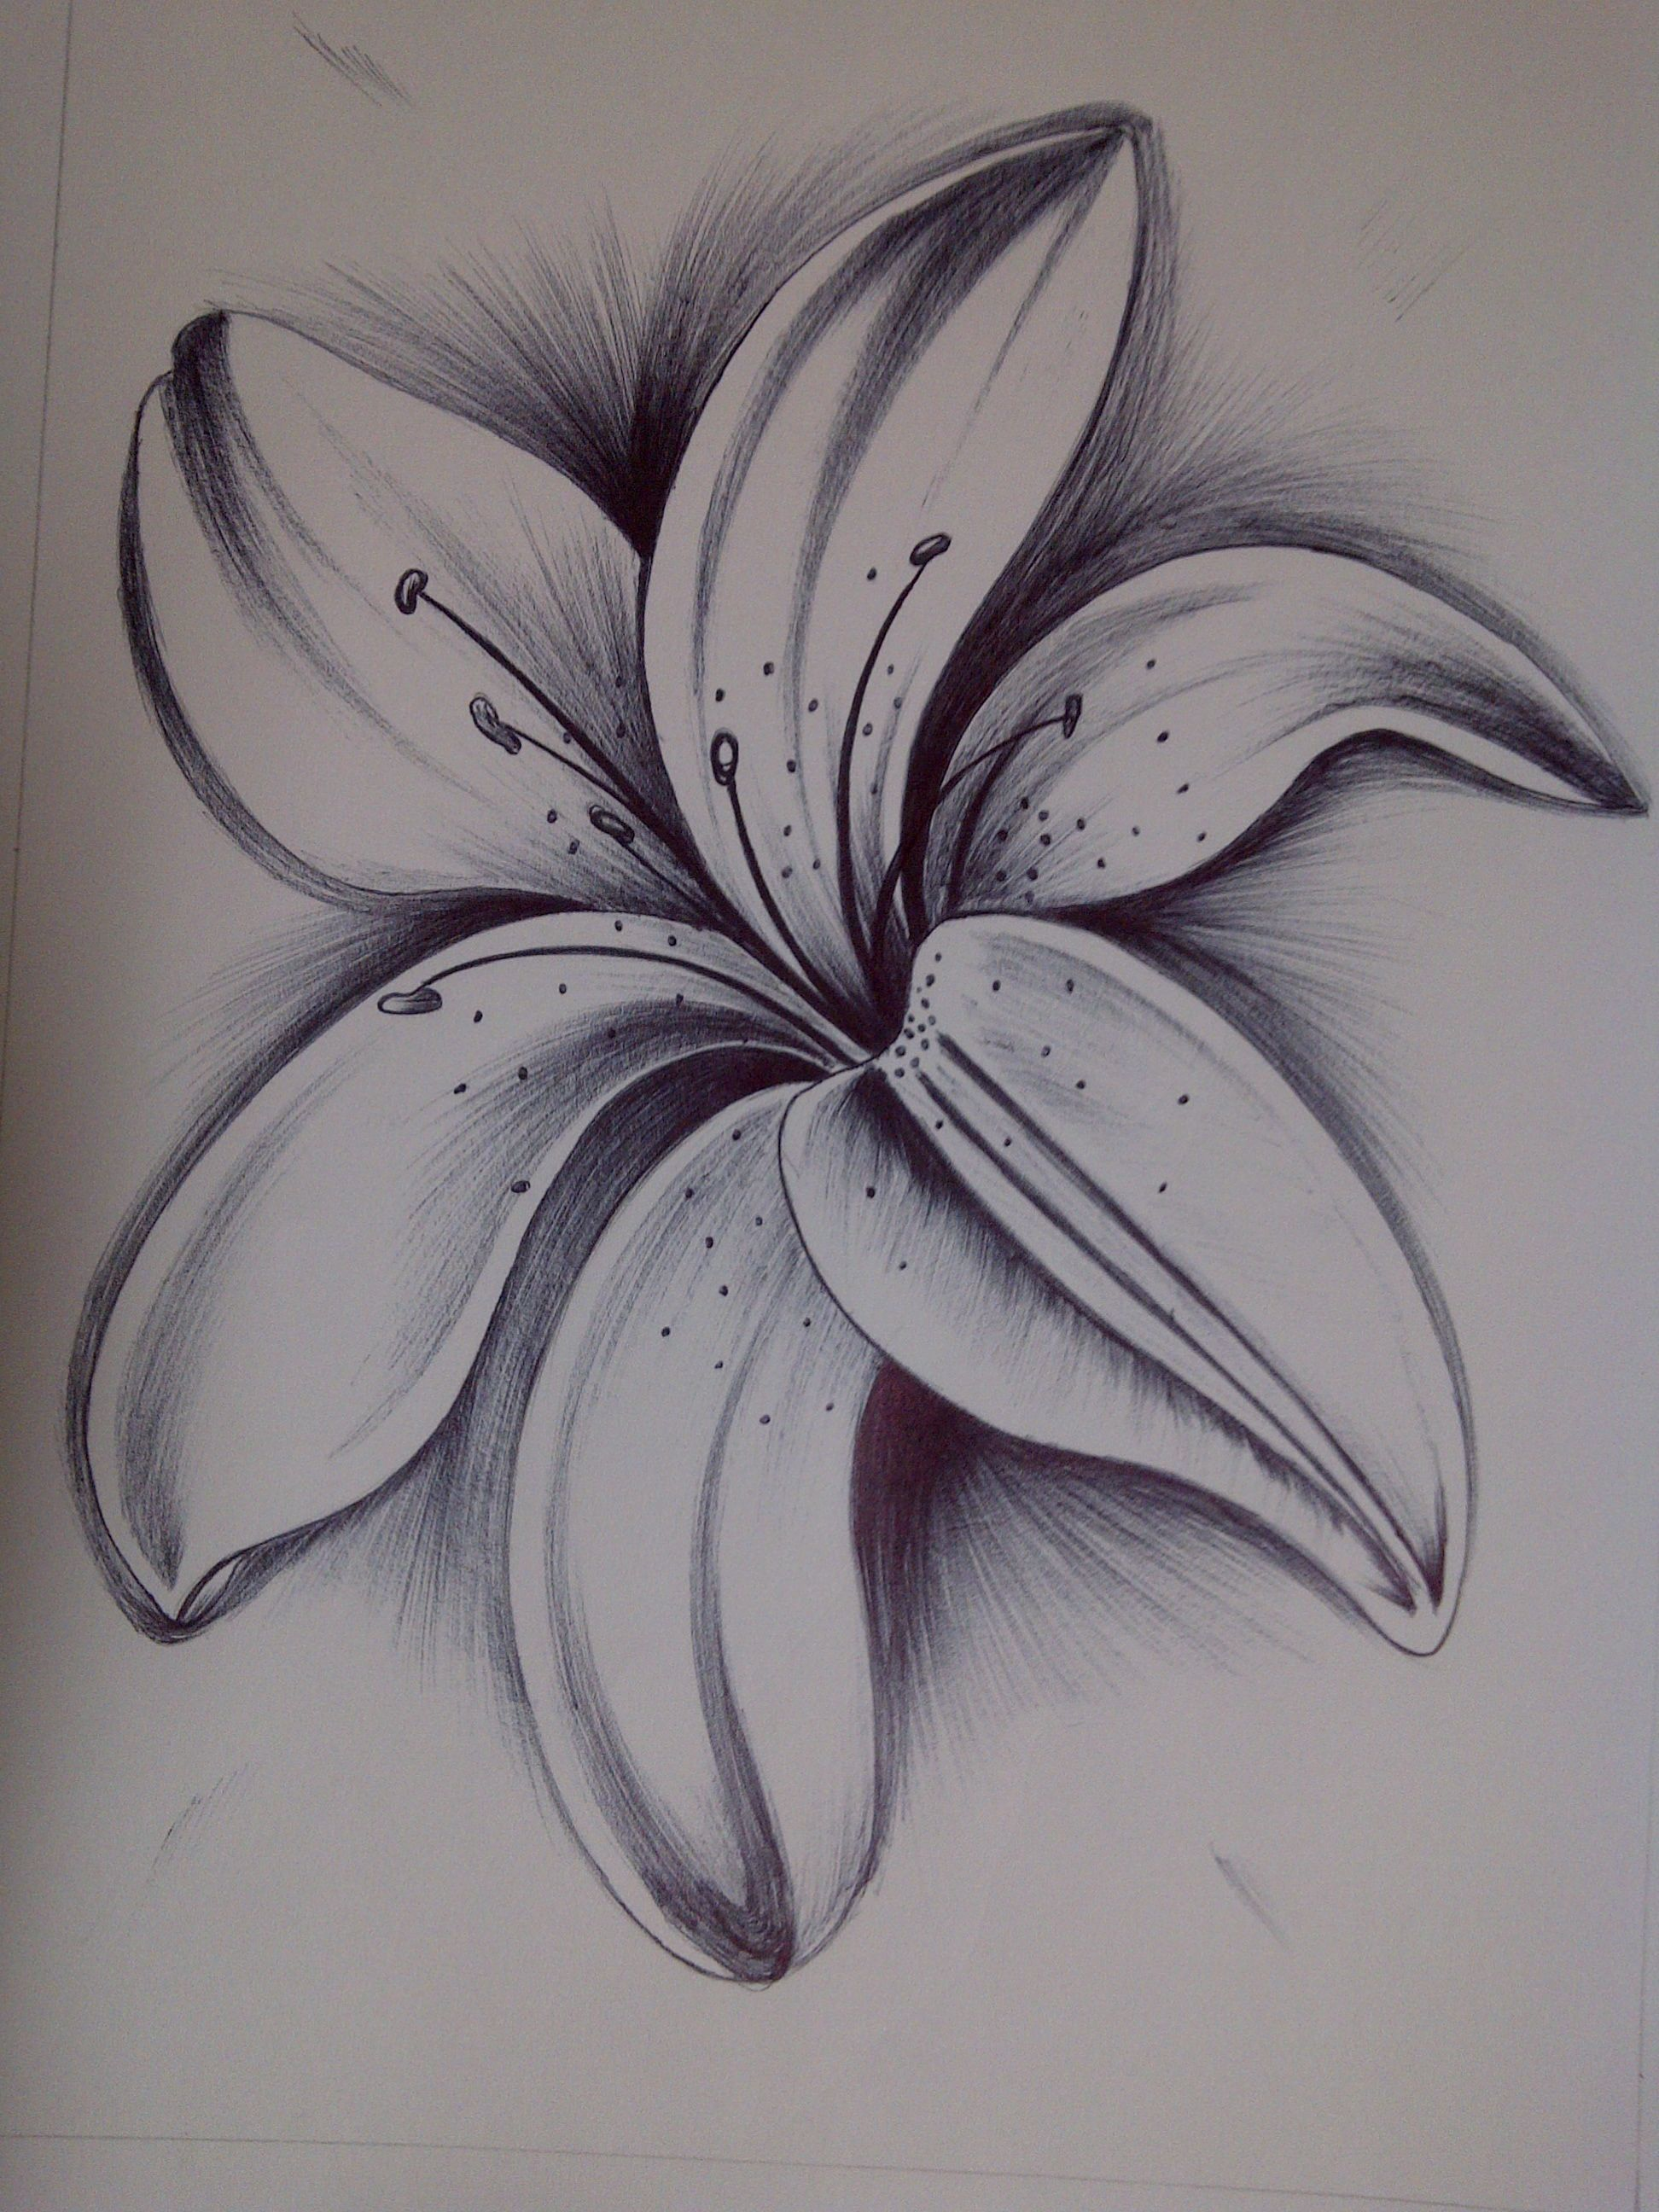 Pin by DrVibha Babbar on Sketches Pencil drawings of